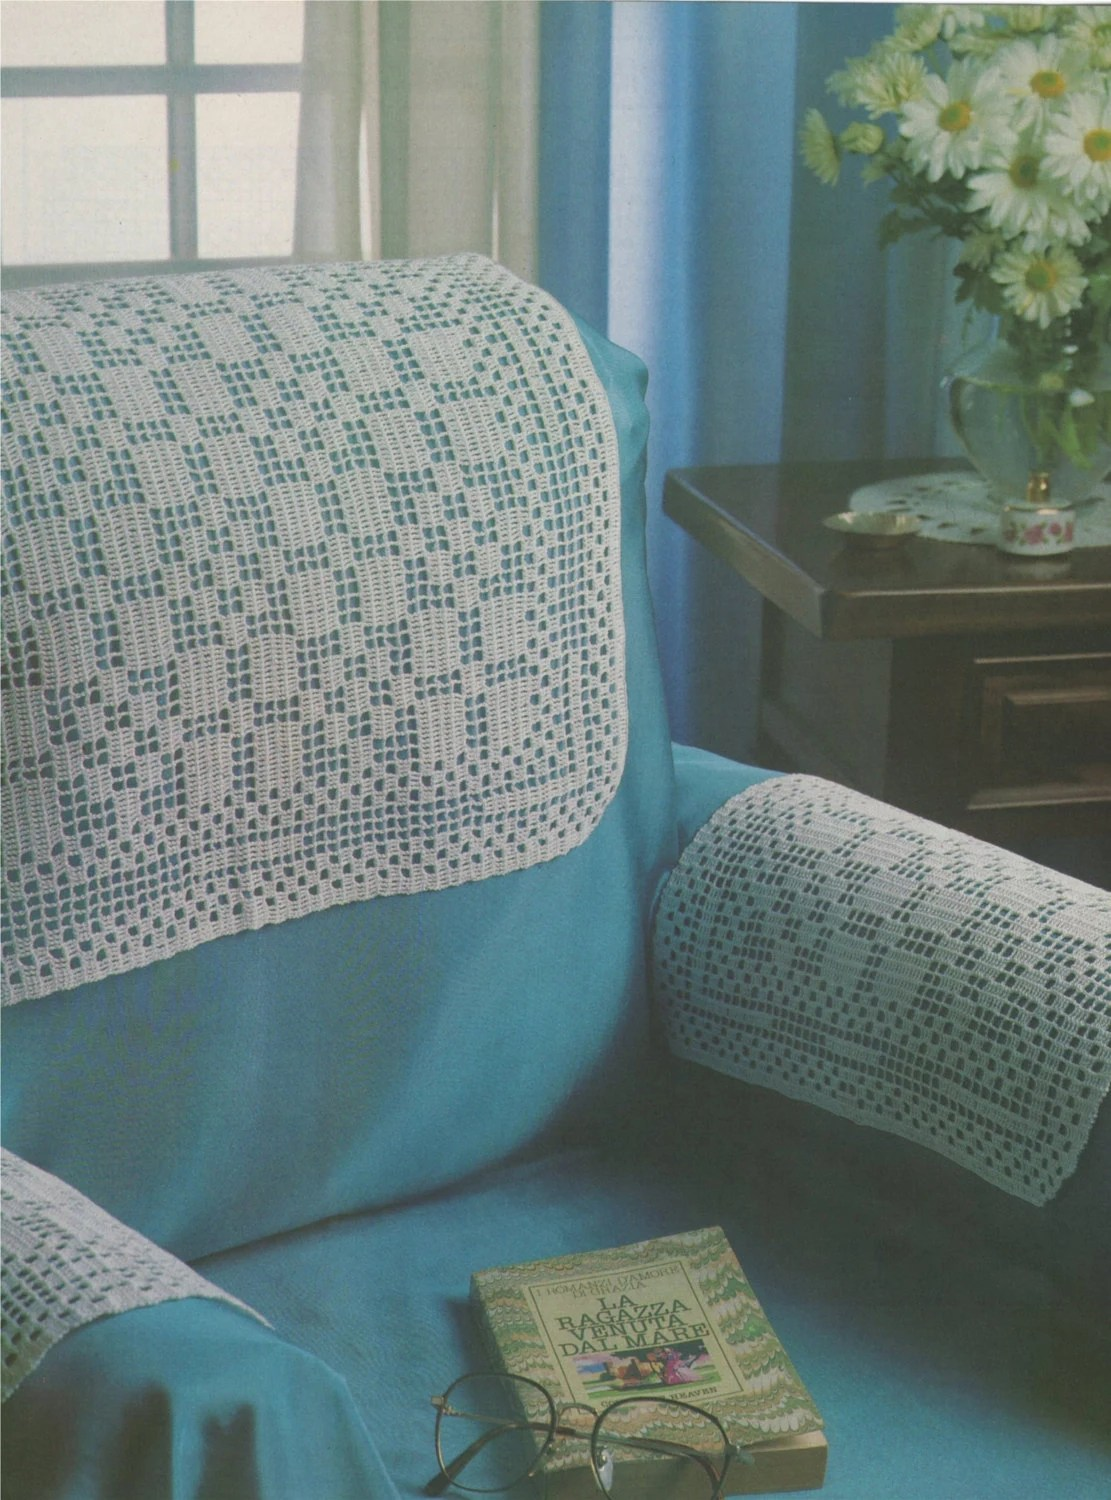 Sofa Slipcover Patterns Free Crochet Sofa Covers Designs | Brokeasshome.com